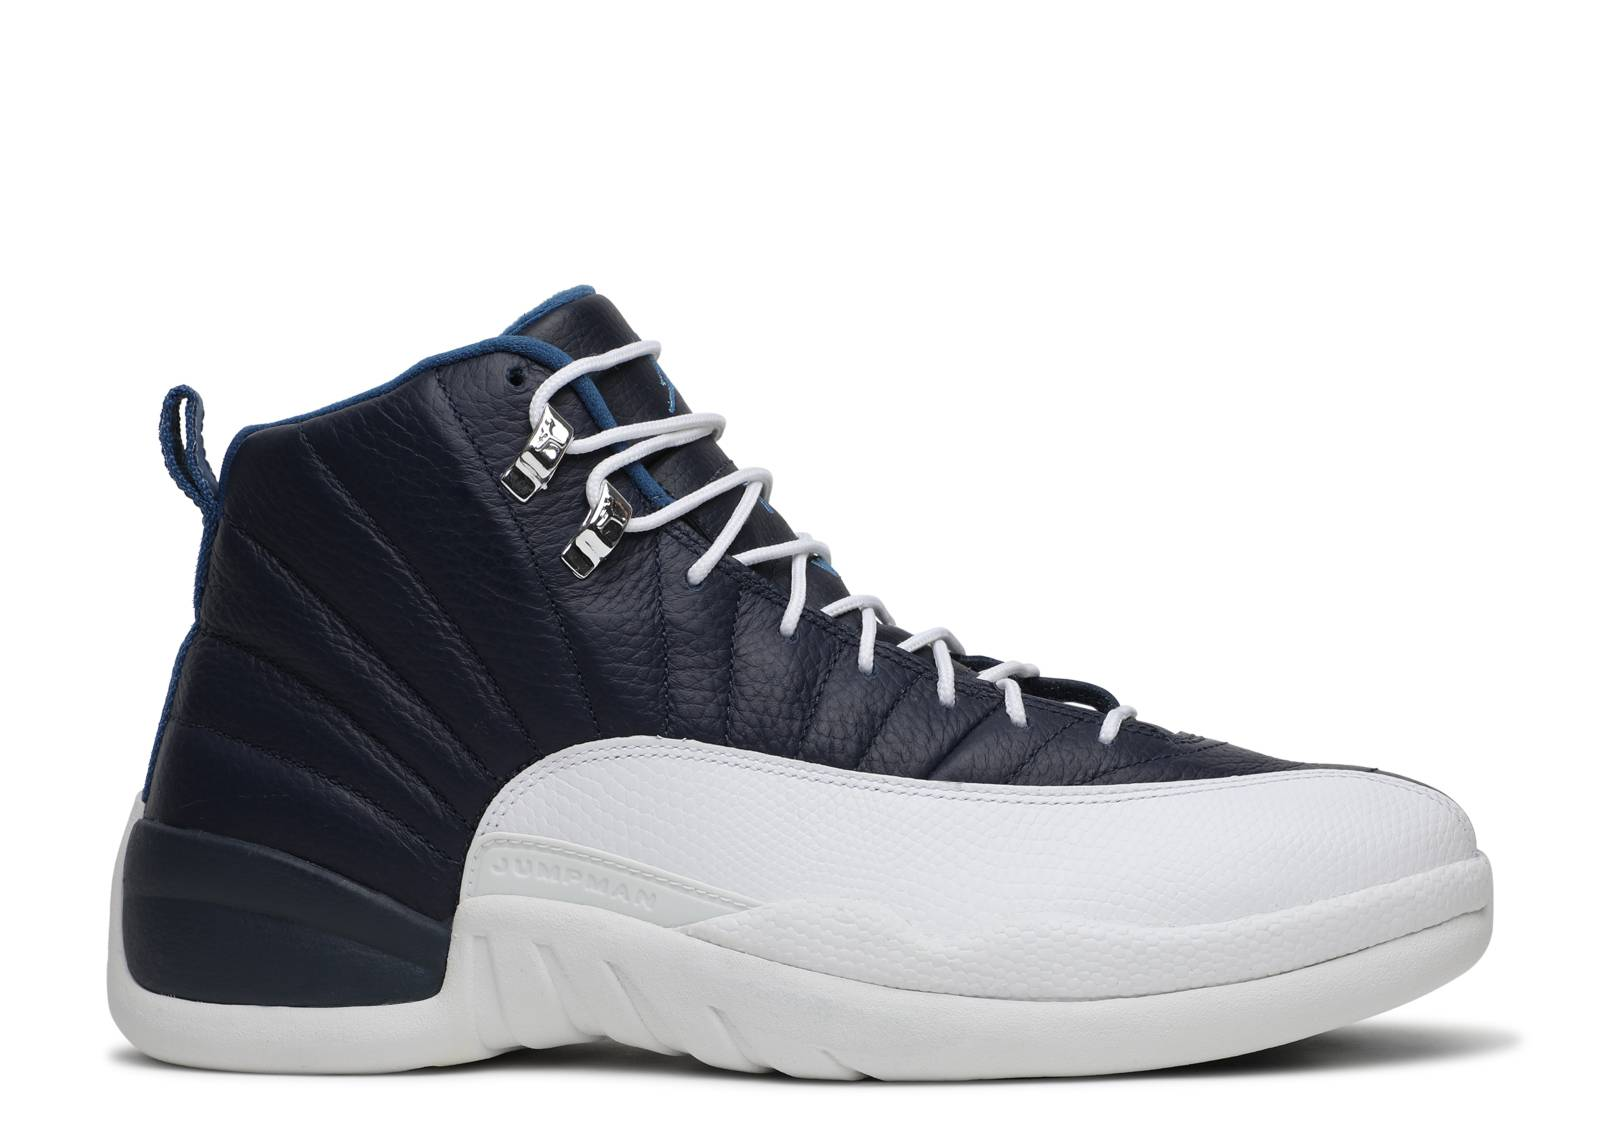 Air Jordan 12 Obsidienne